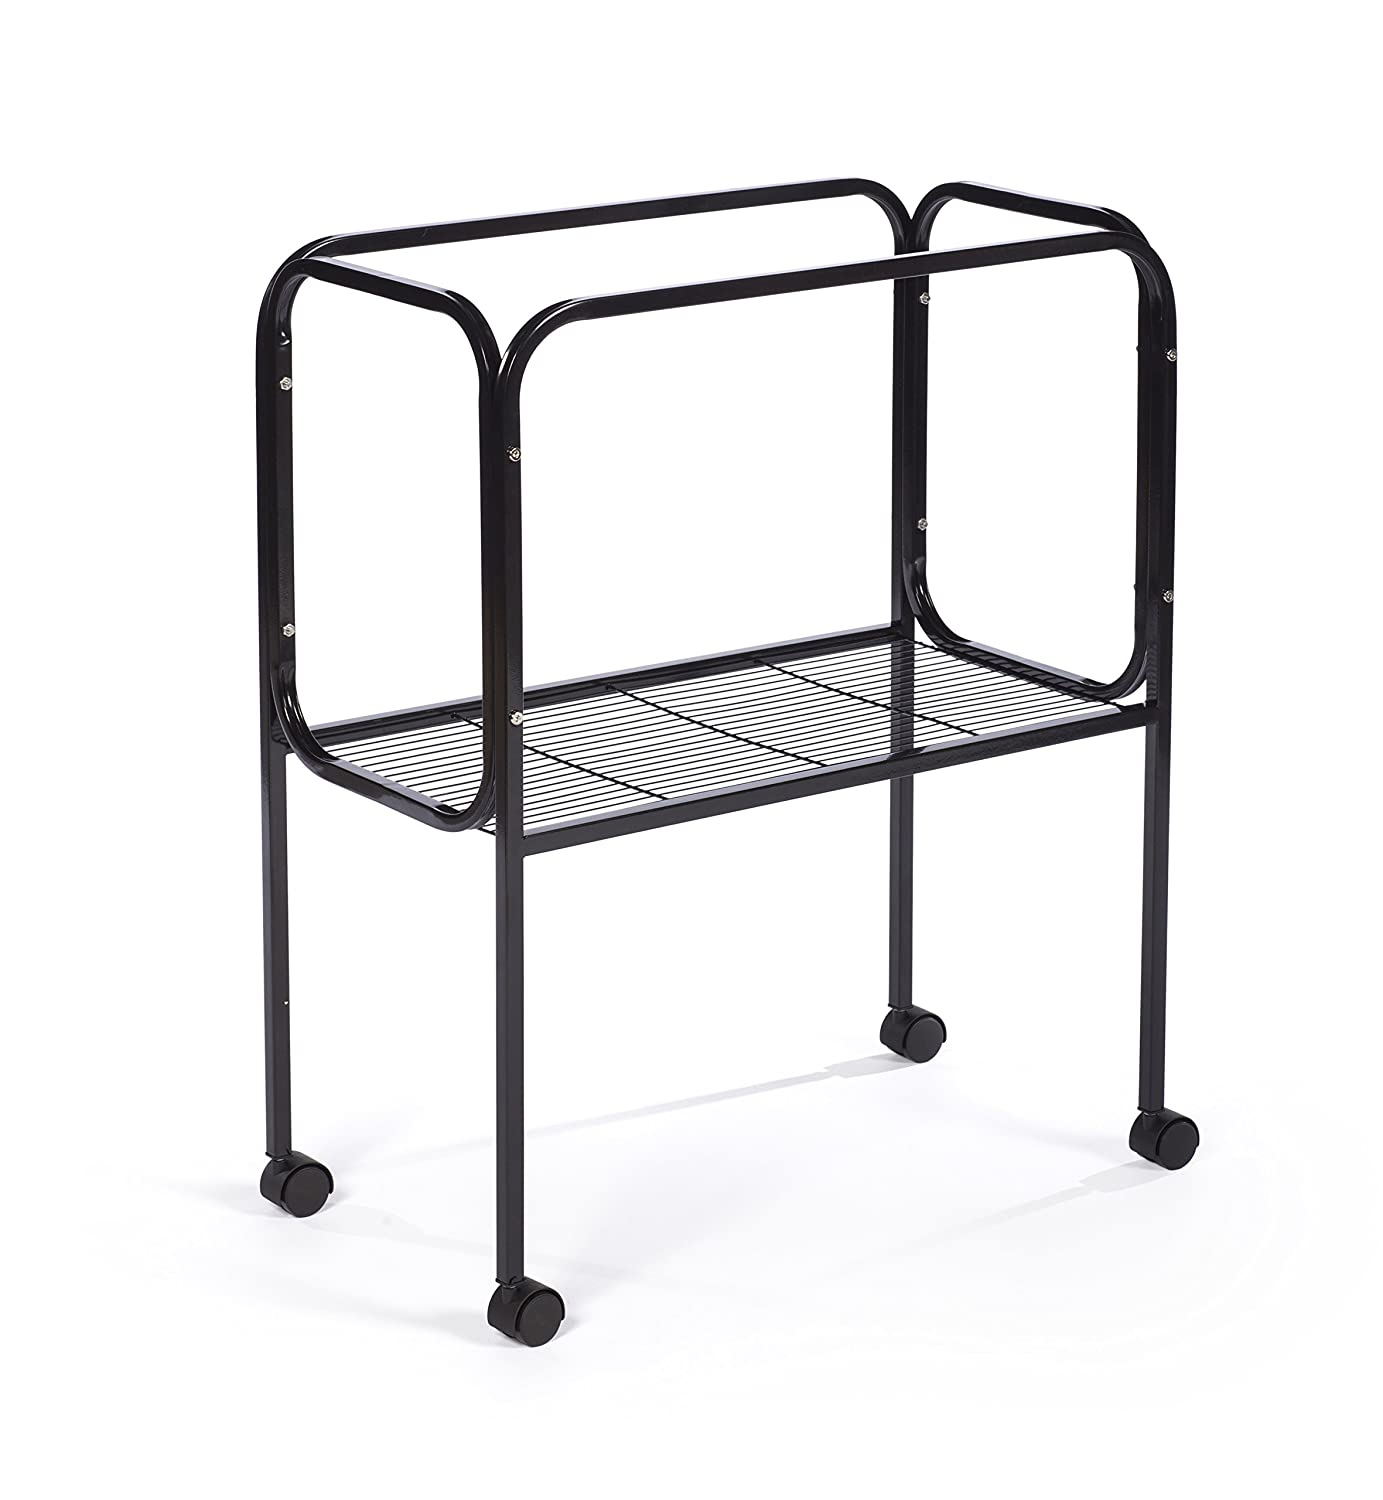 Black Prevue Pet Products 446 Bird Cage Stand for 26  x 14  Base Flight Cages, Black